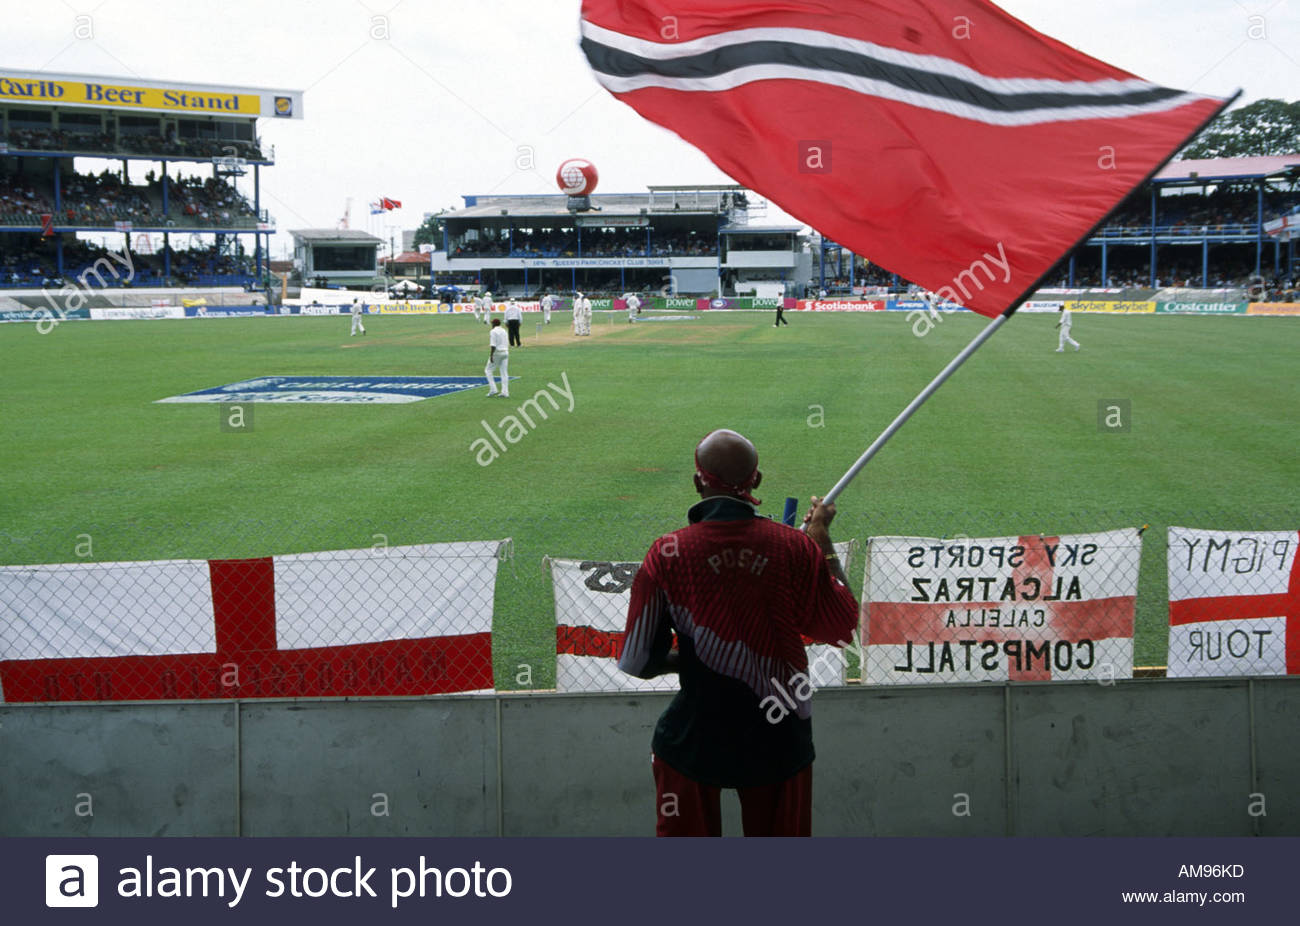 west indies vs england - photo #21